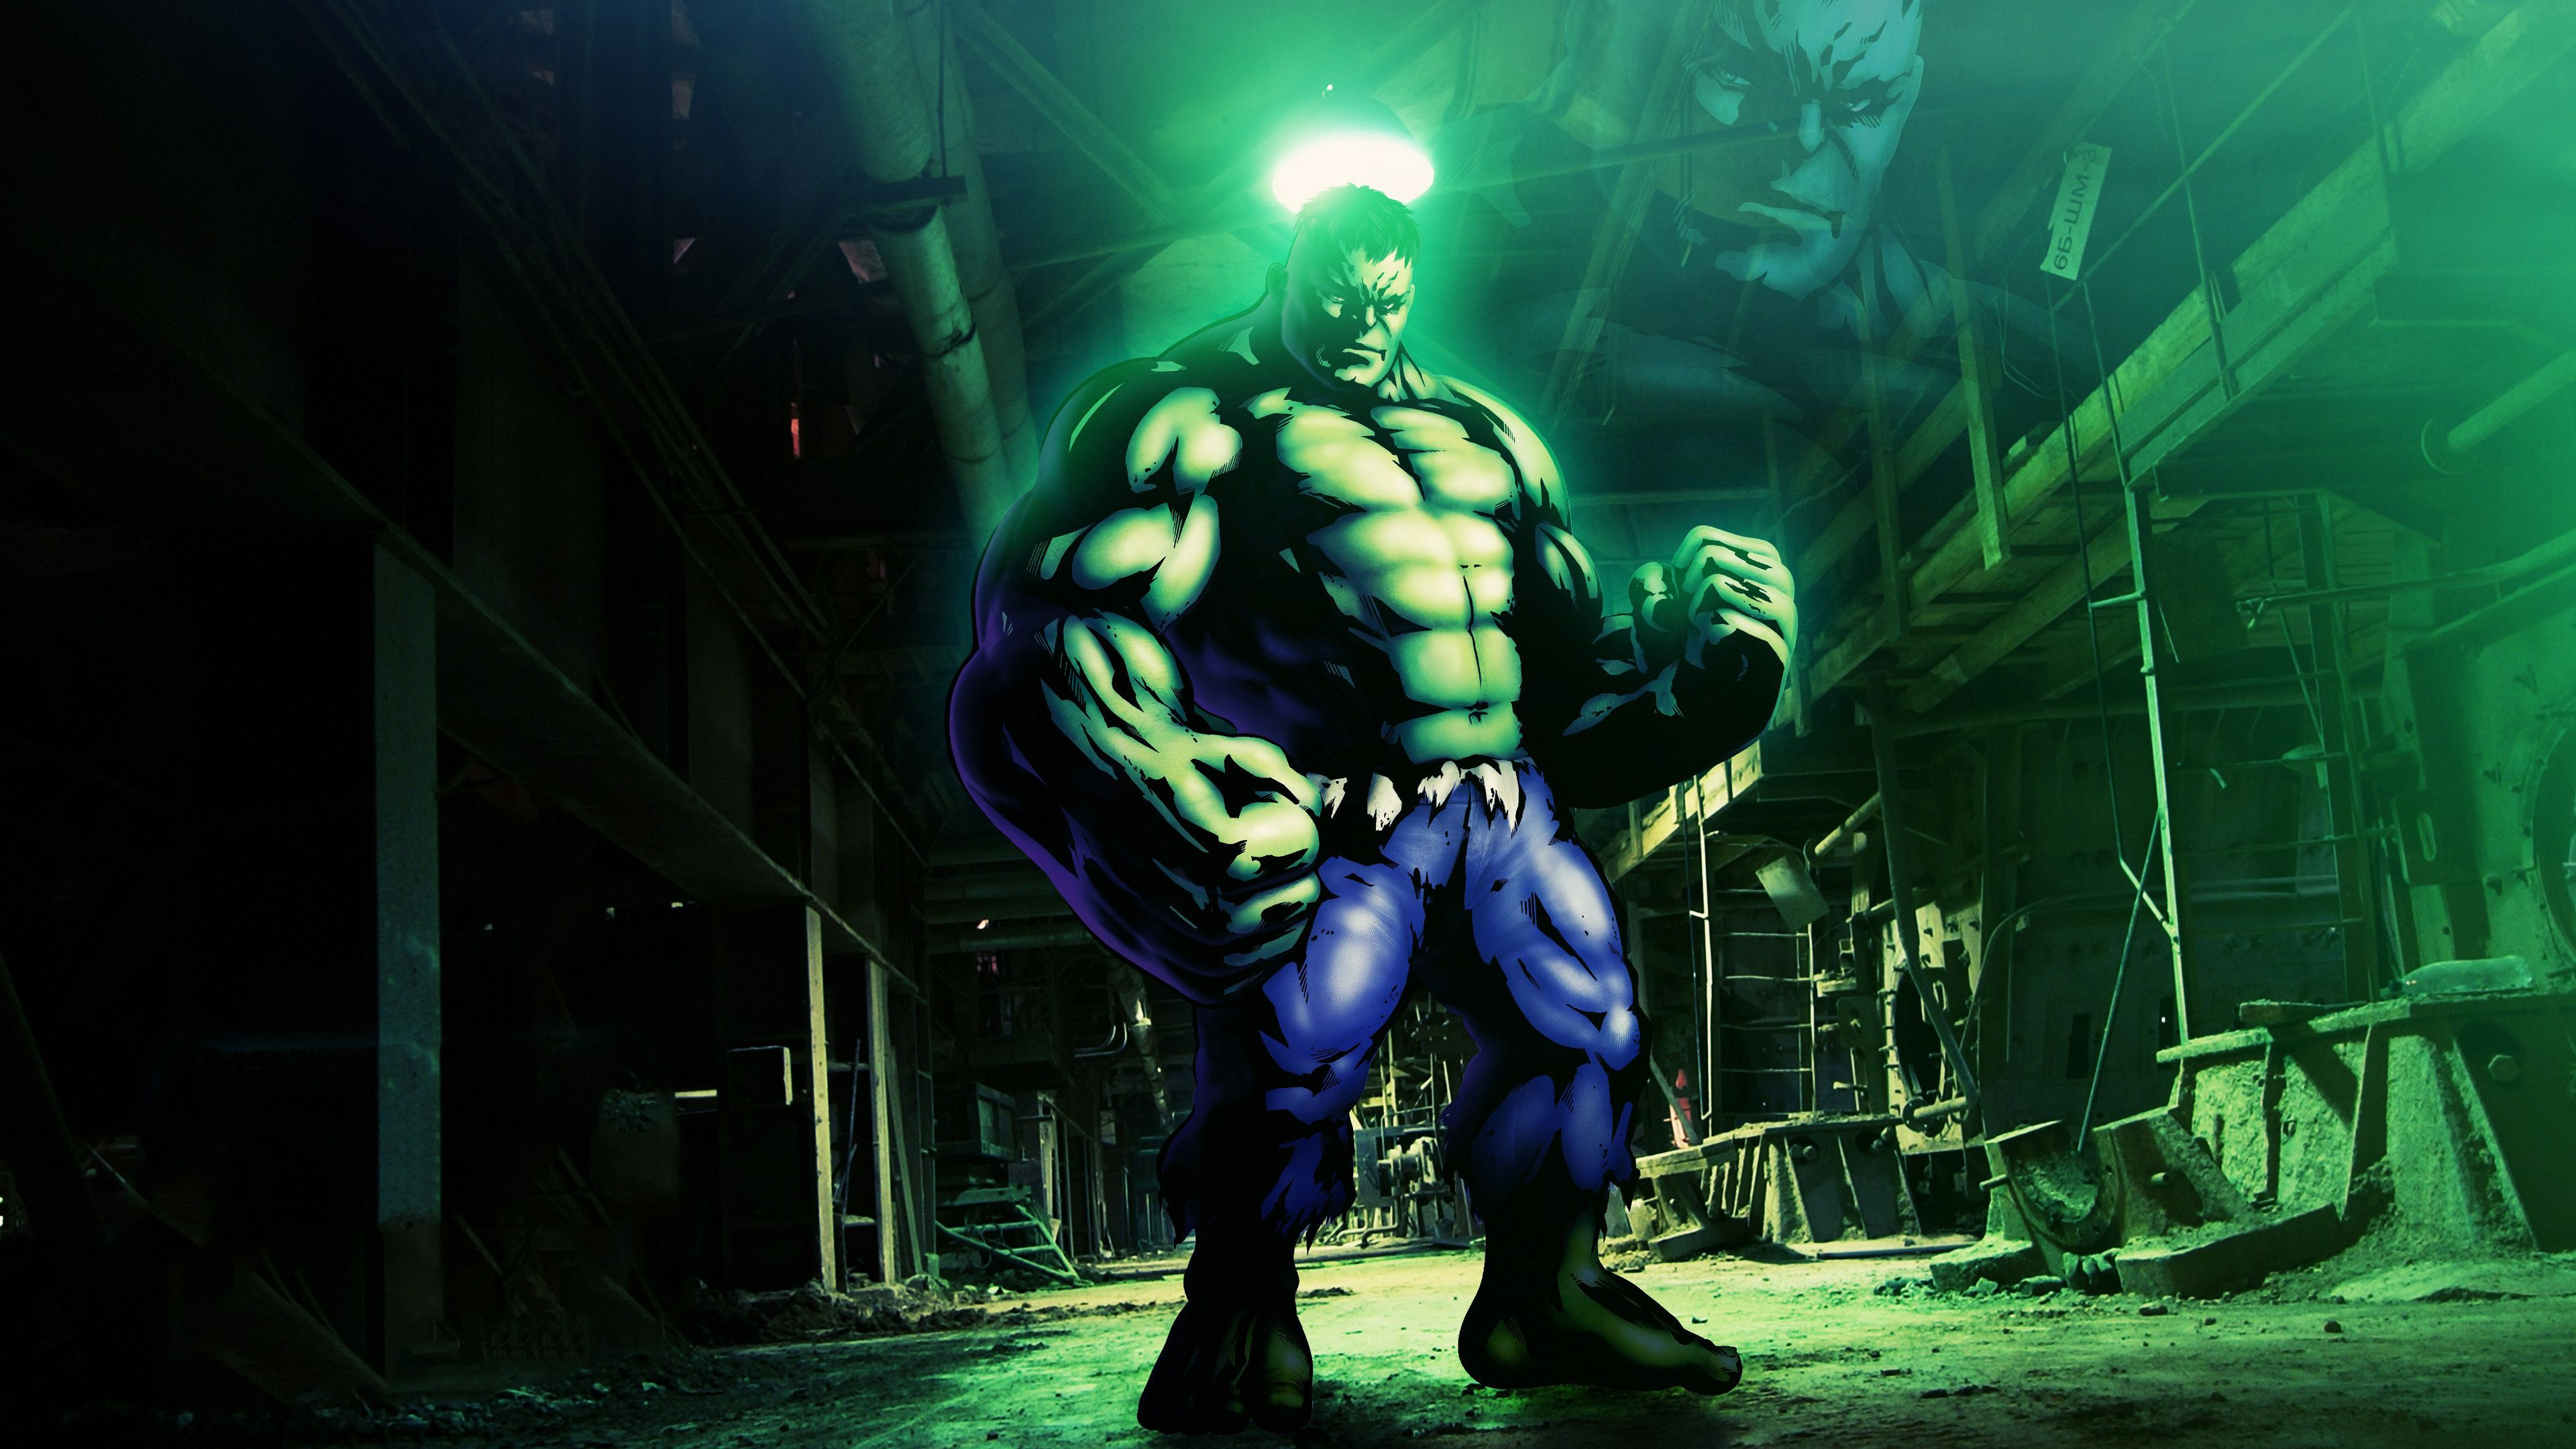 Marvel Vs Capcom 3 Hulk 4k Marvel Vs Capcom Infinite Wallpapers Hulk Wallpapers Hd Wallpapers Games Wallpape Marvel Vs Capcom Infinite Marvel Vs Capcom Hulk